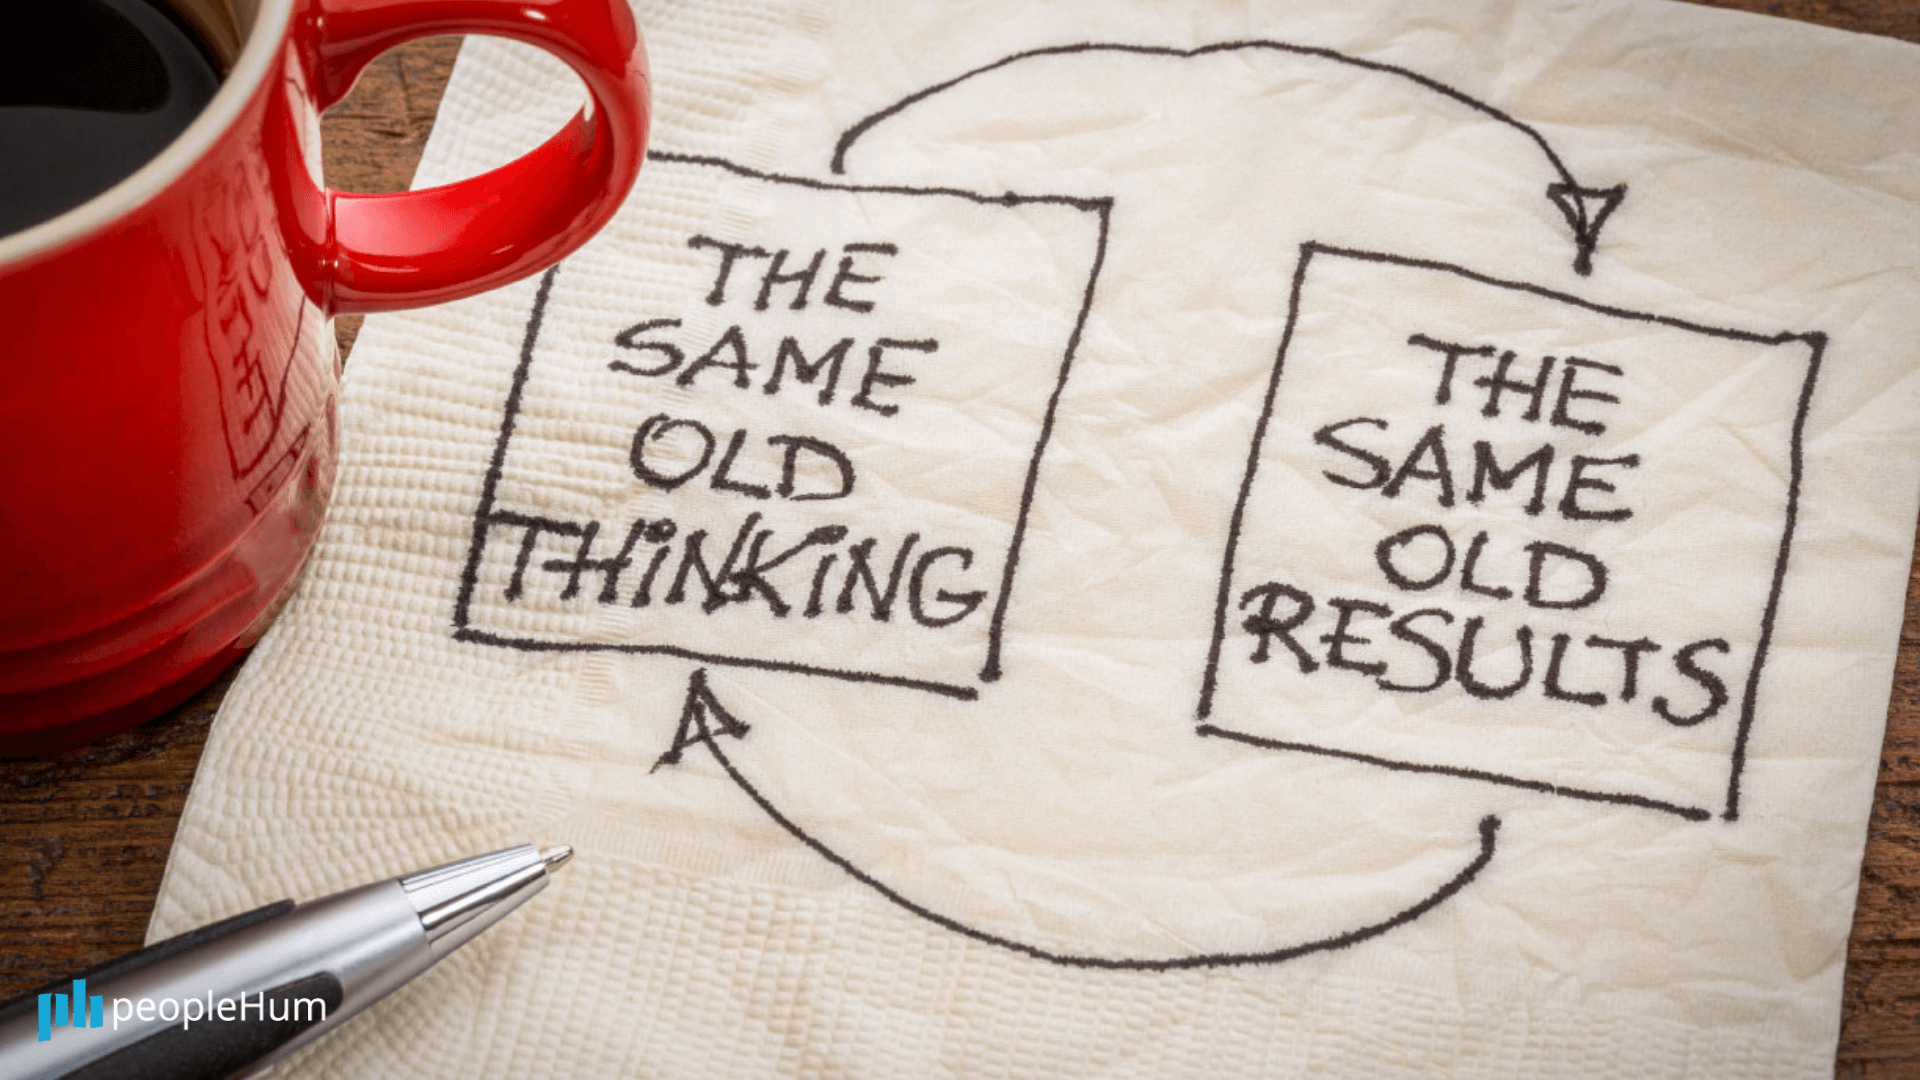 Are you trying to get new results with old thinking?